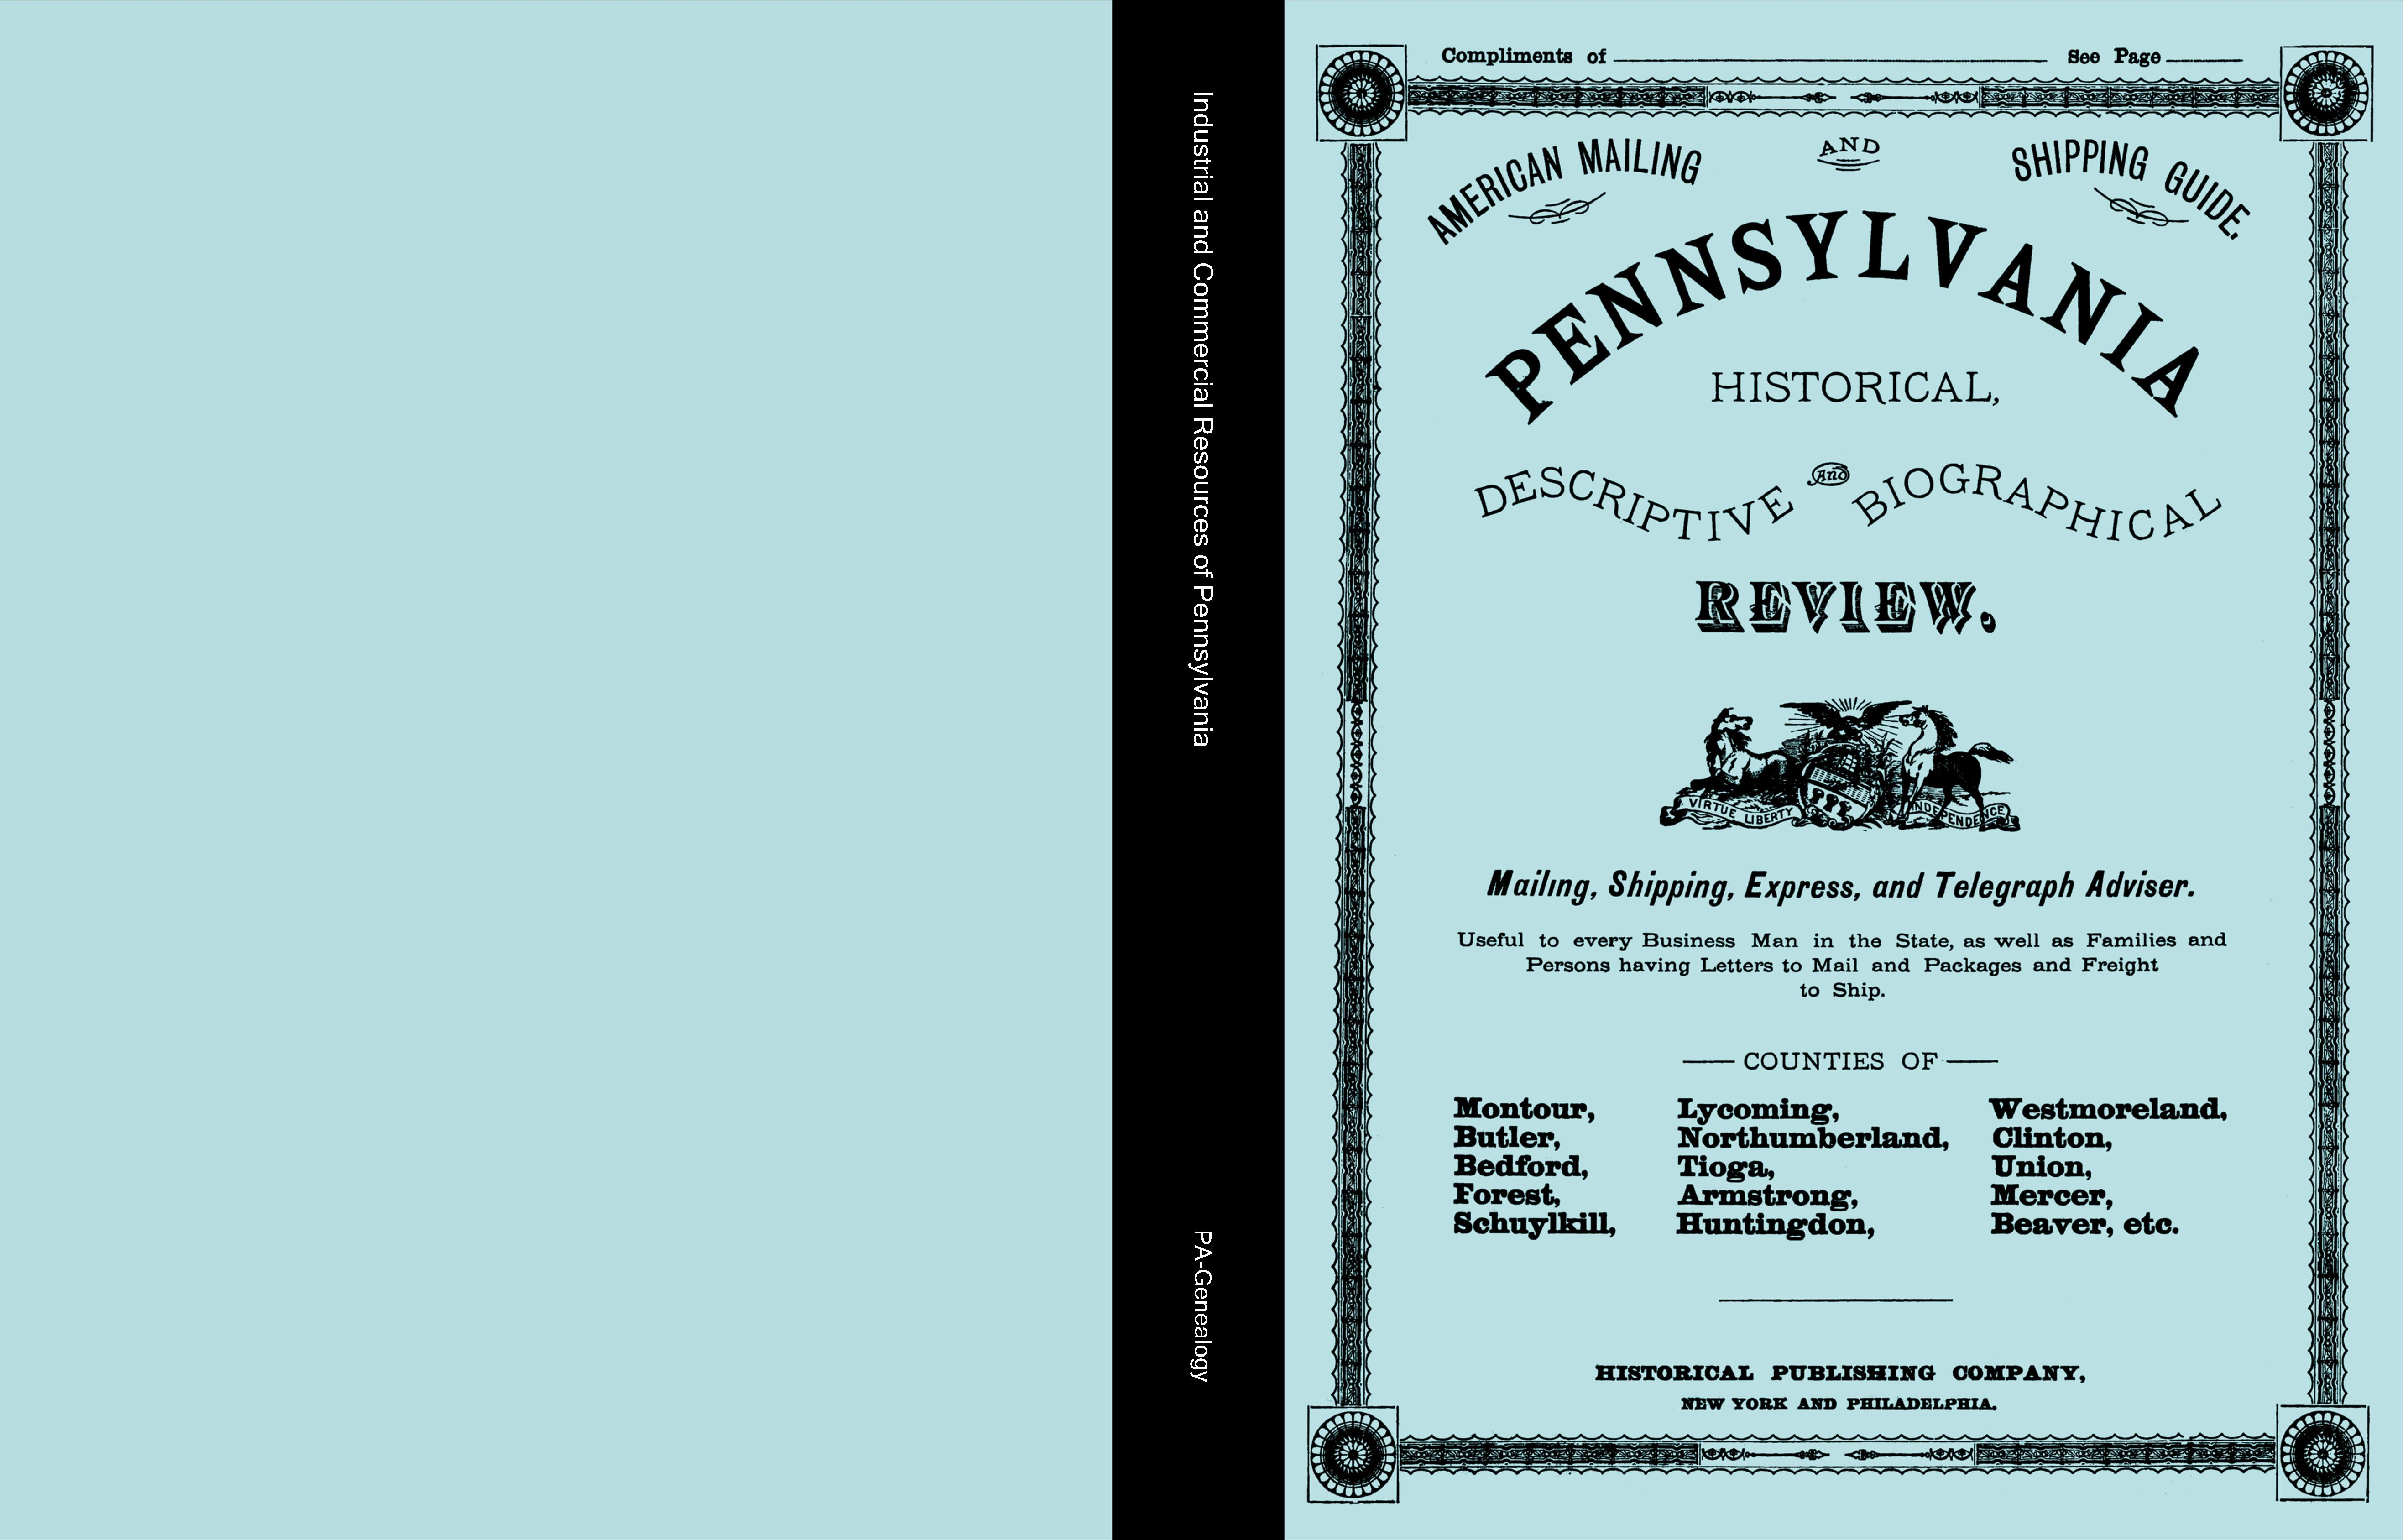 Industrial and Commercial Resources of Pennsylvania (Northern PA) cover image